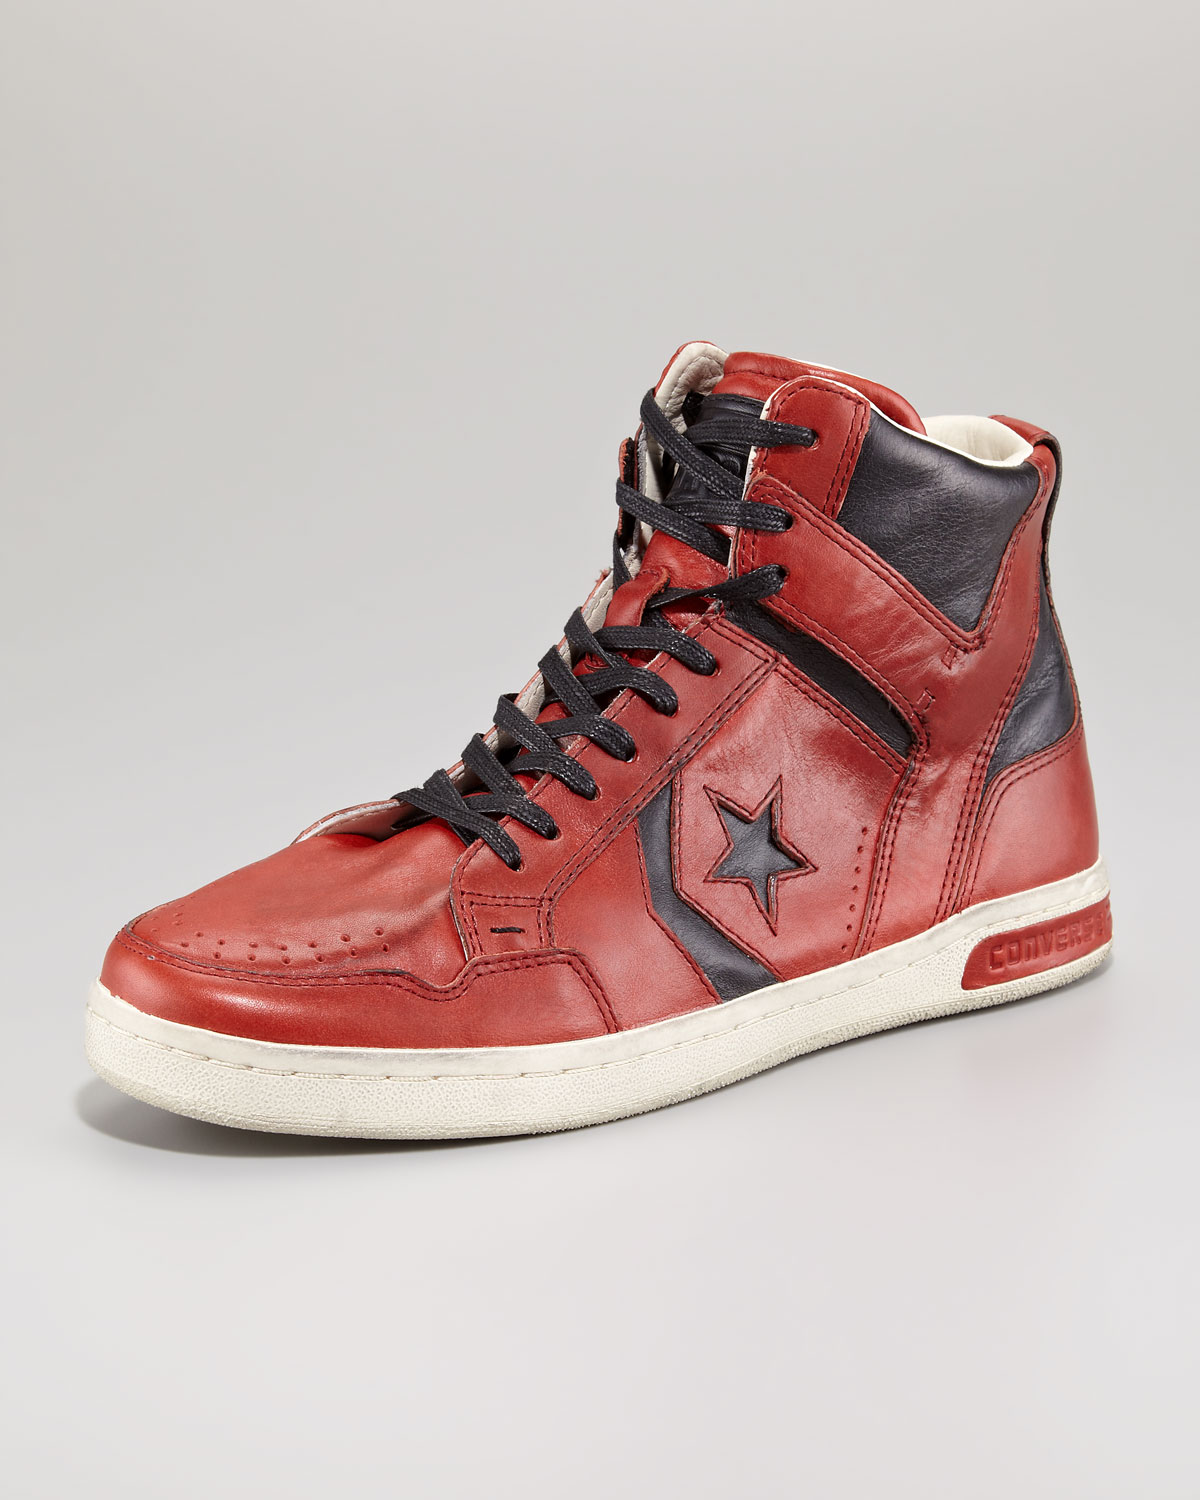 Converse Red & Black Cleveland High-Top Sneakers 10qXviq